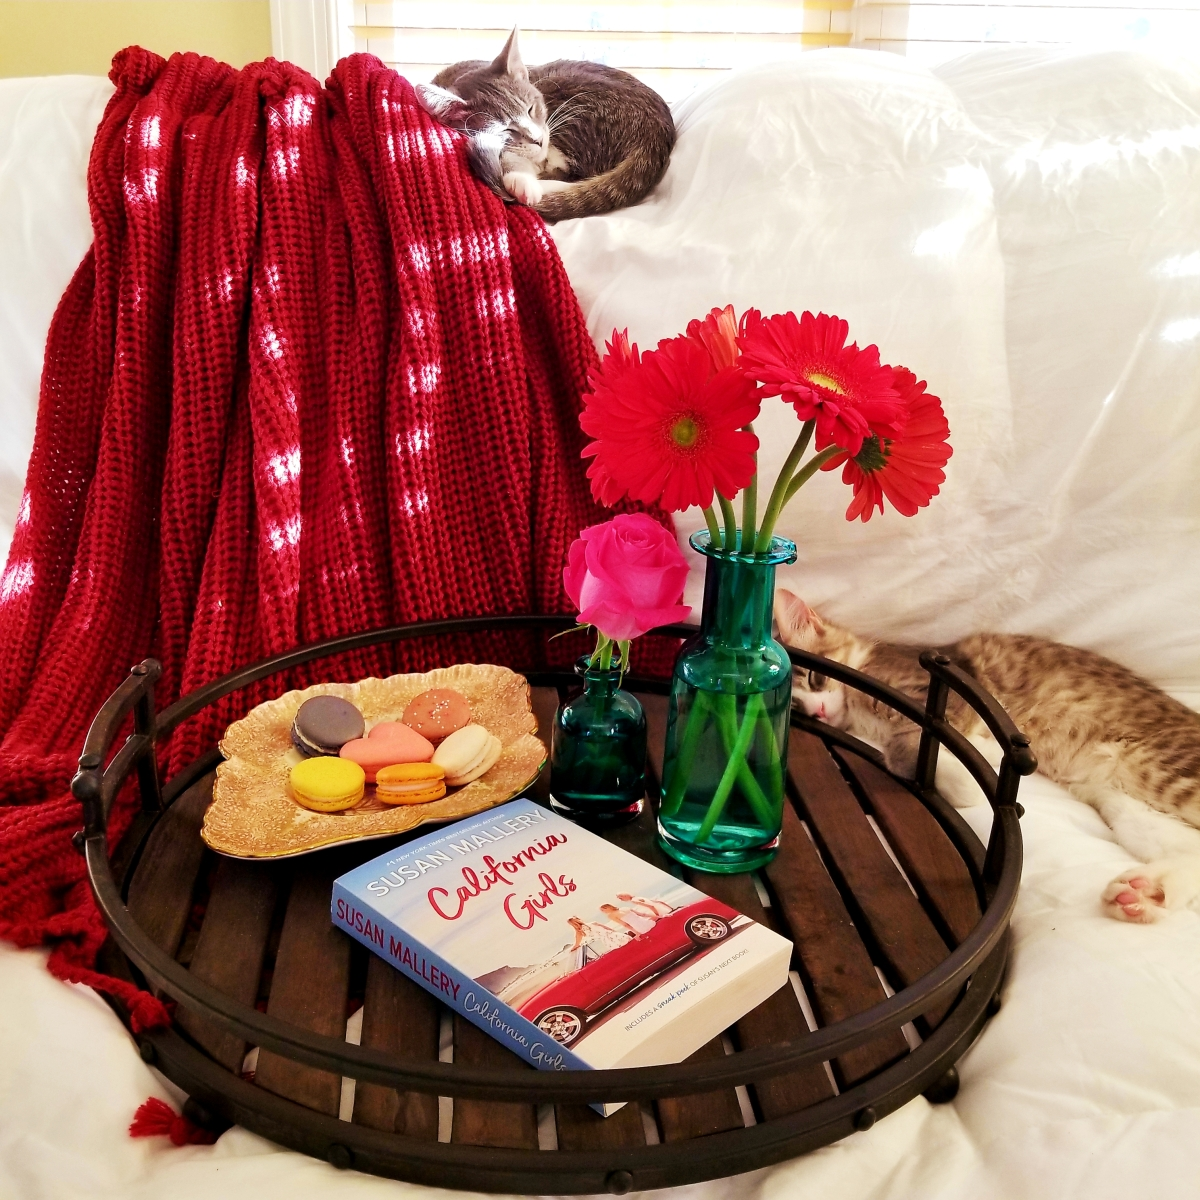 California Girls by Susan Mallery #bookexcerpt #tarheelreader #thrcagirls @susanmallery @harlequinbooks @tlcbooktours #californiagirlsbook #blogtour